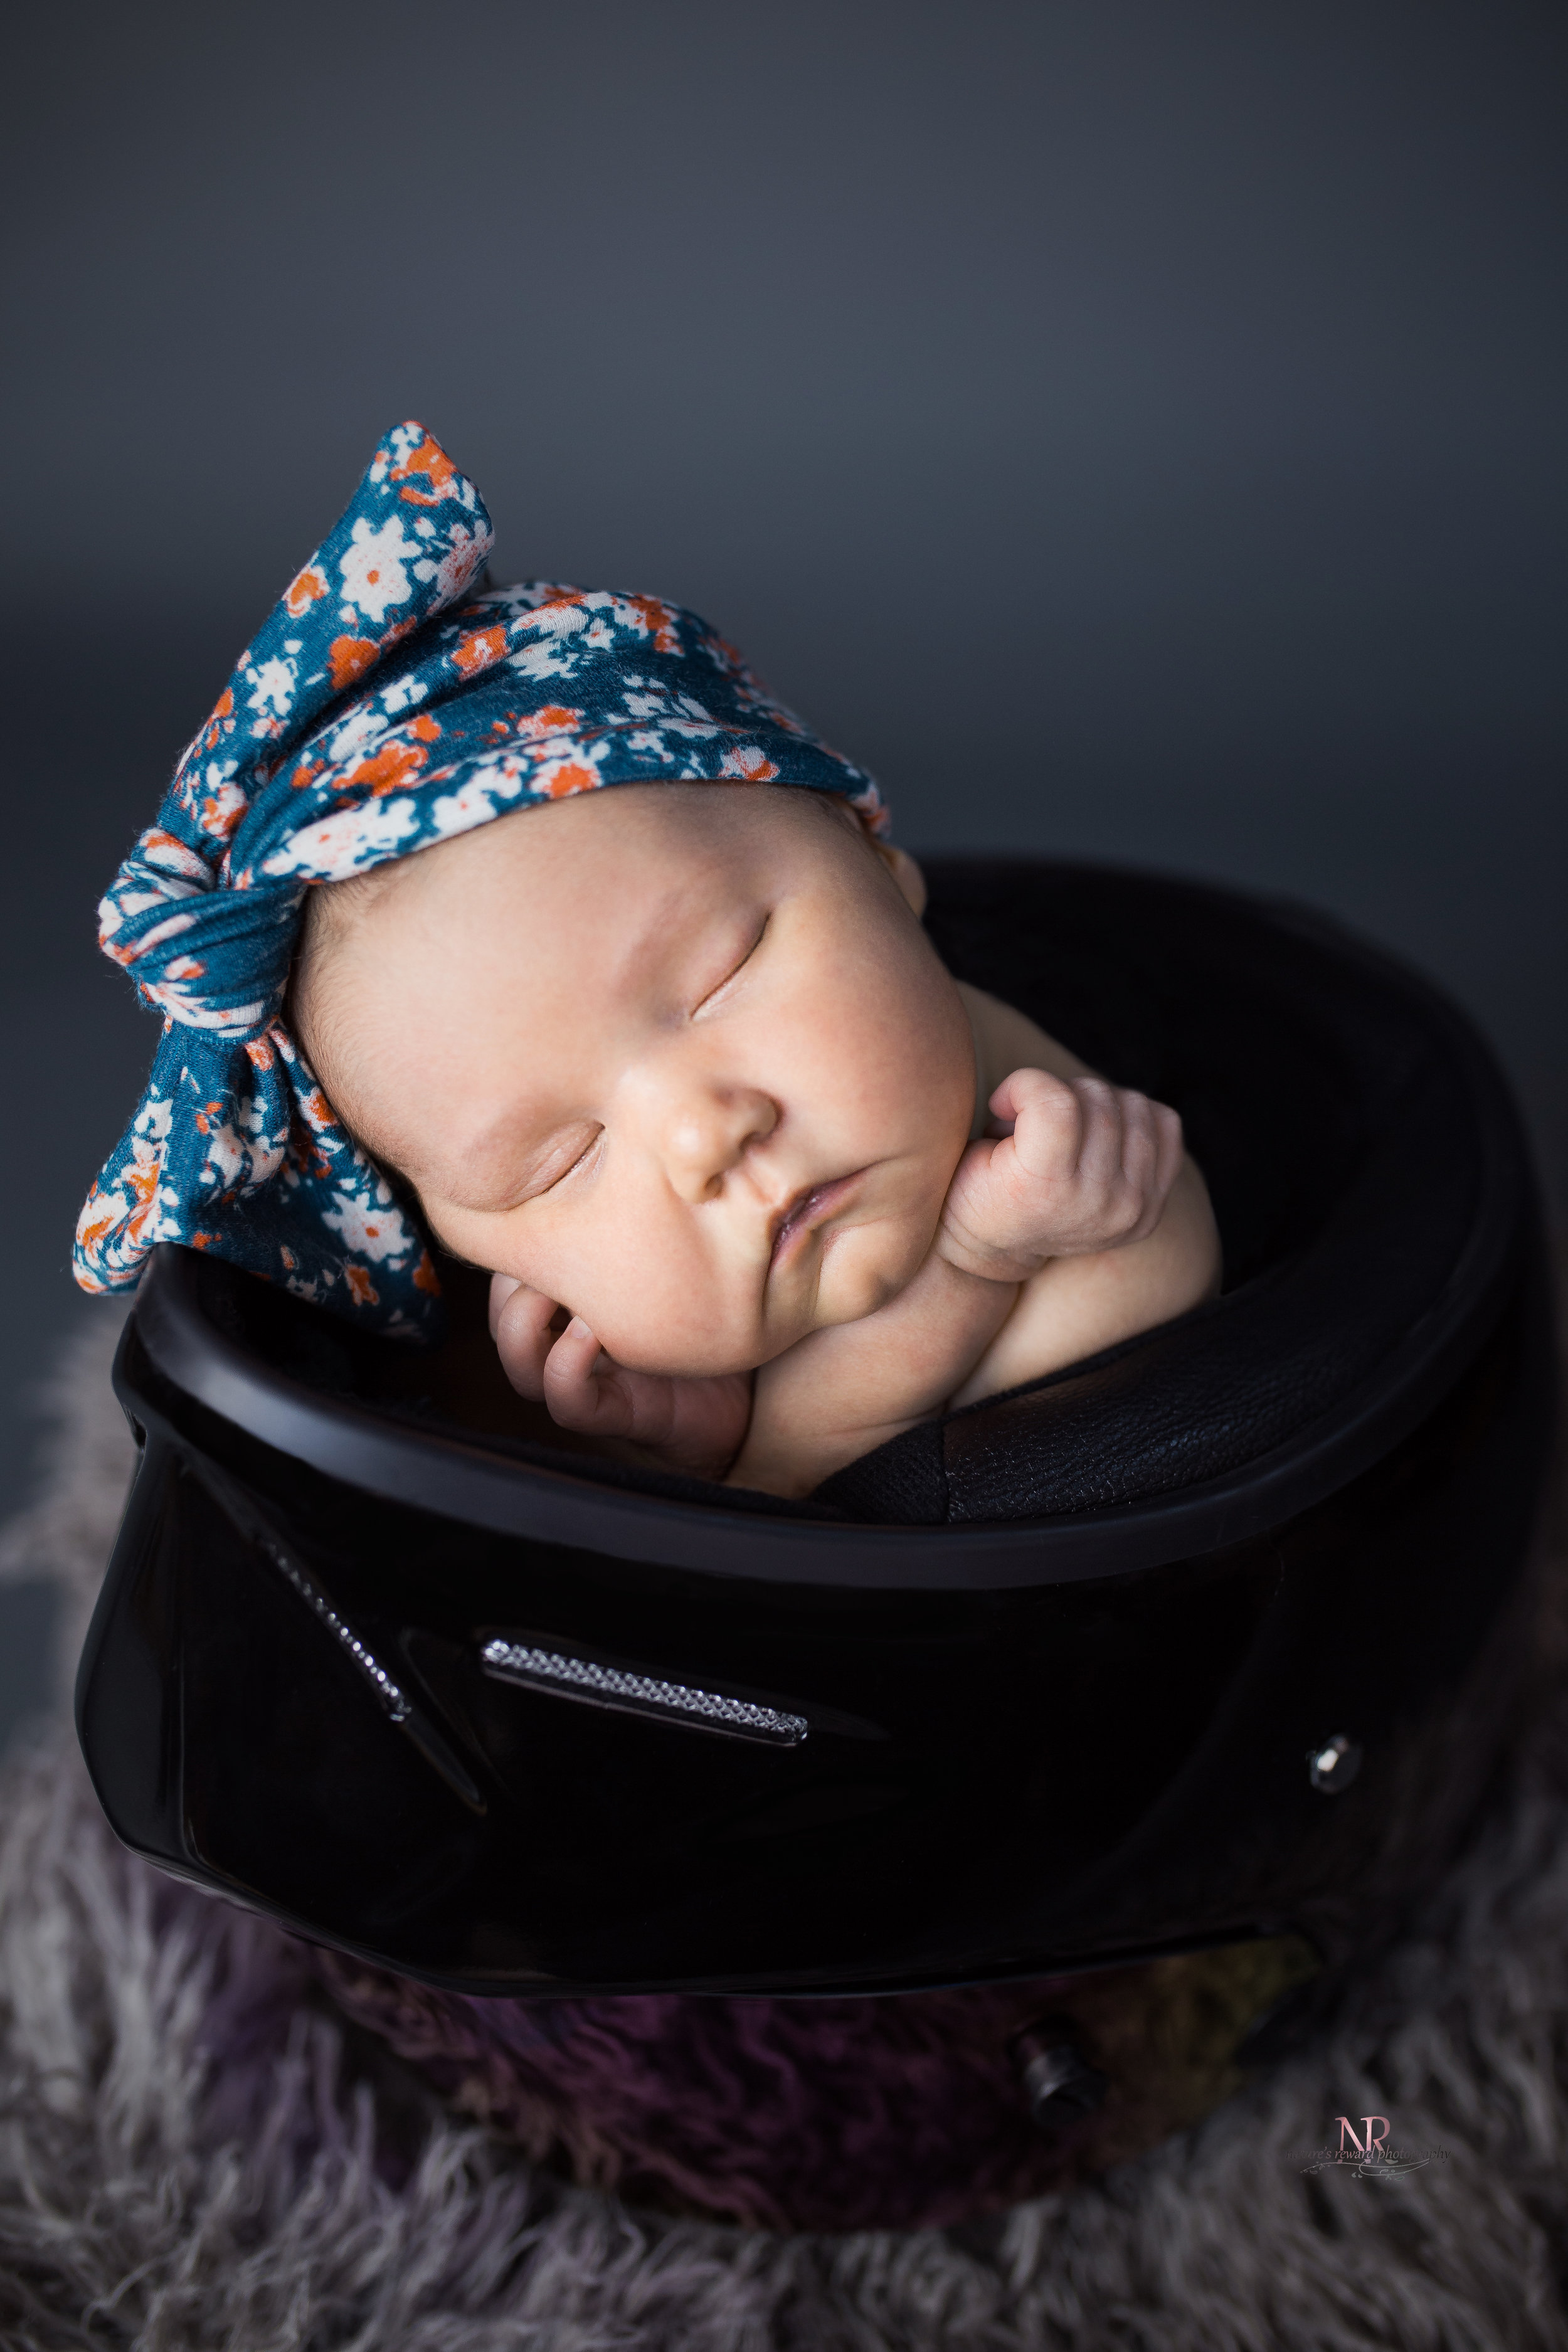 Newborn close up portrait in color of baby girl in her dad's motorcycle helmet taken by Nature's Reward Photography